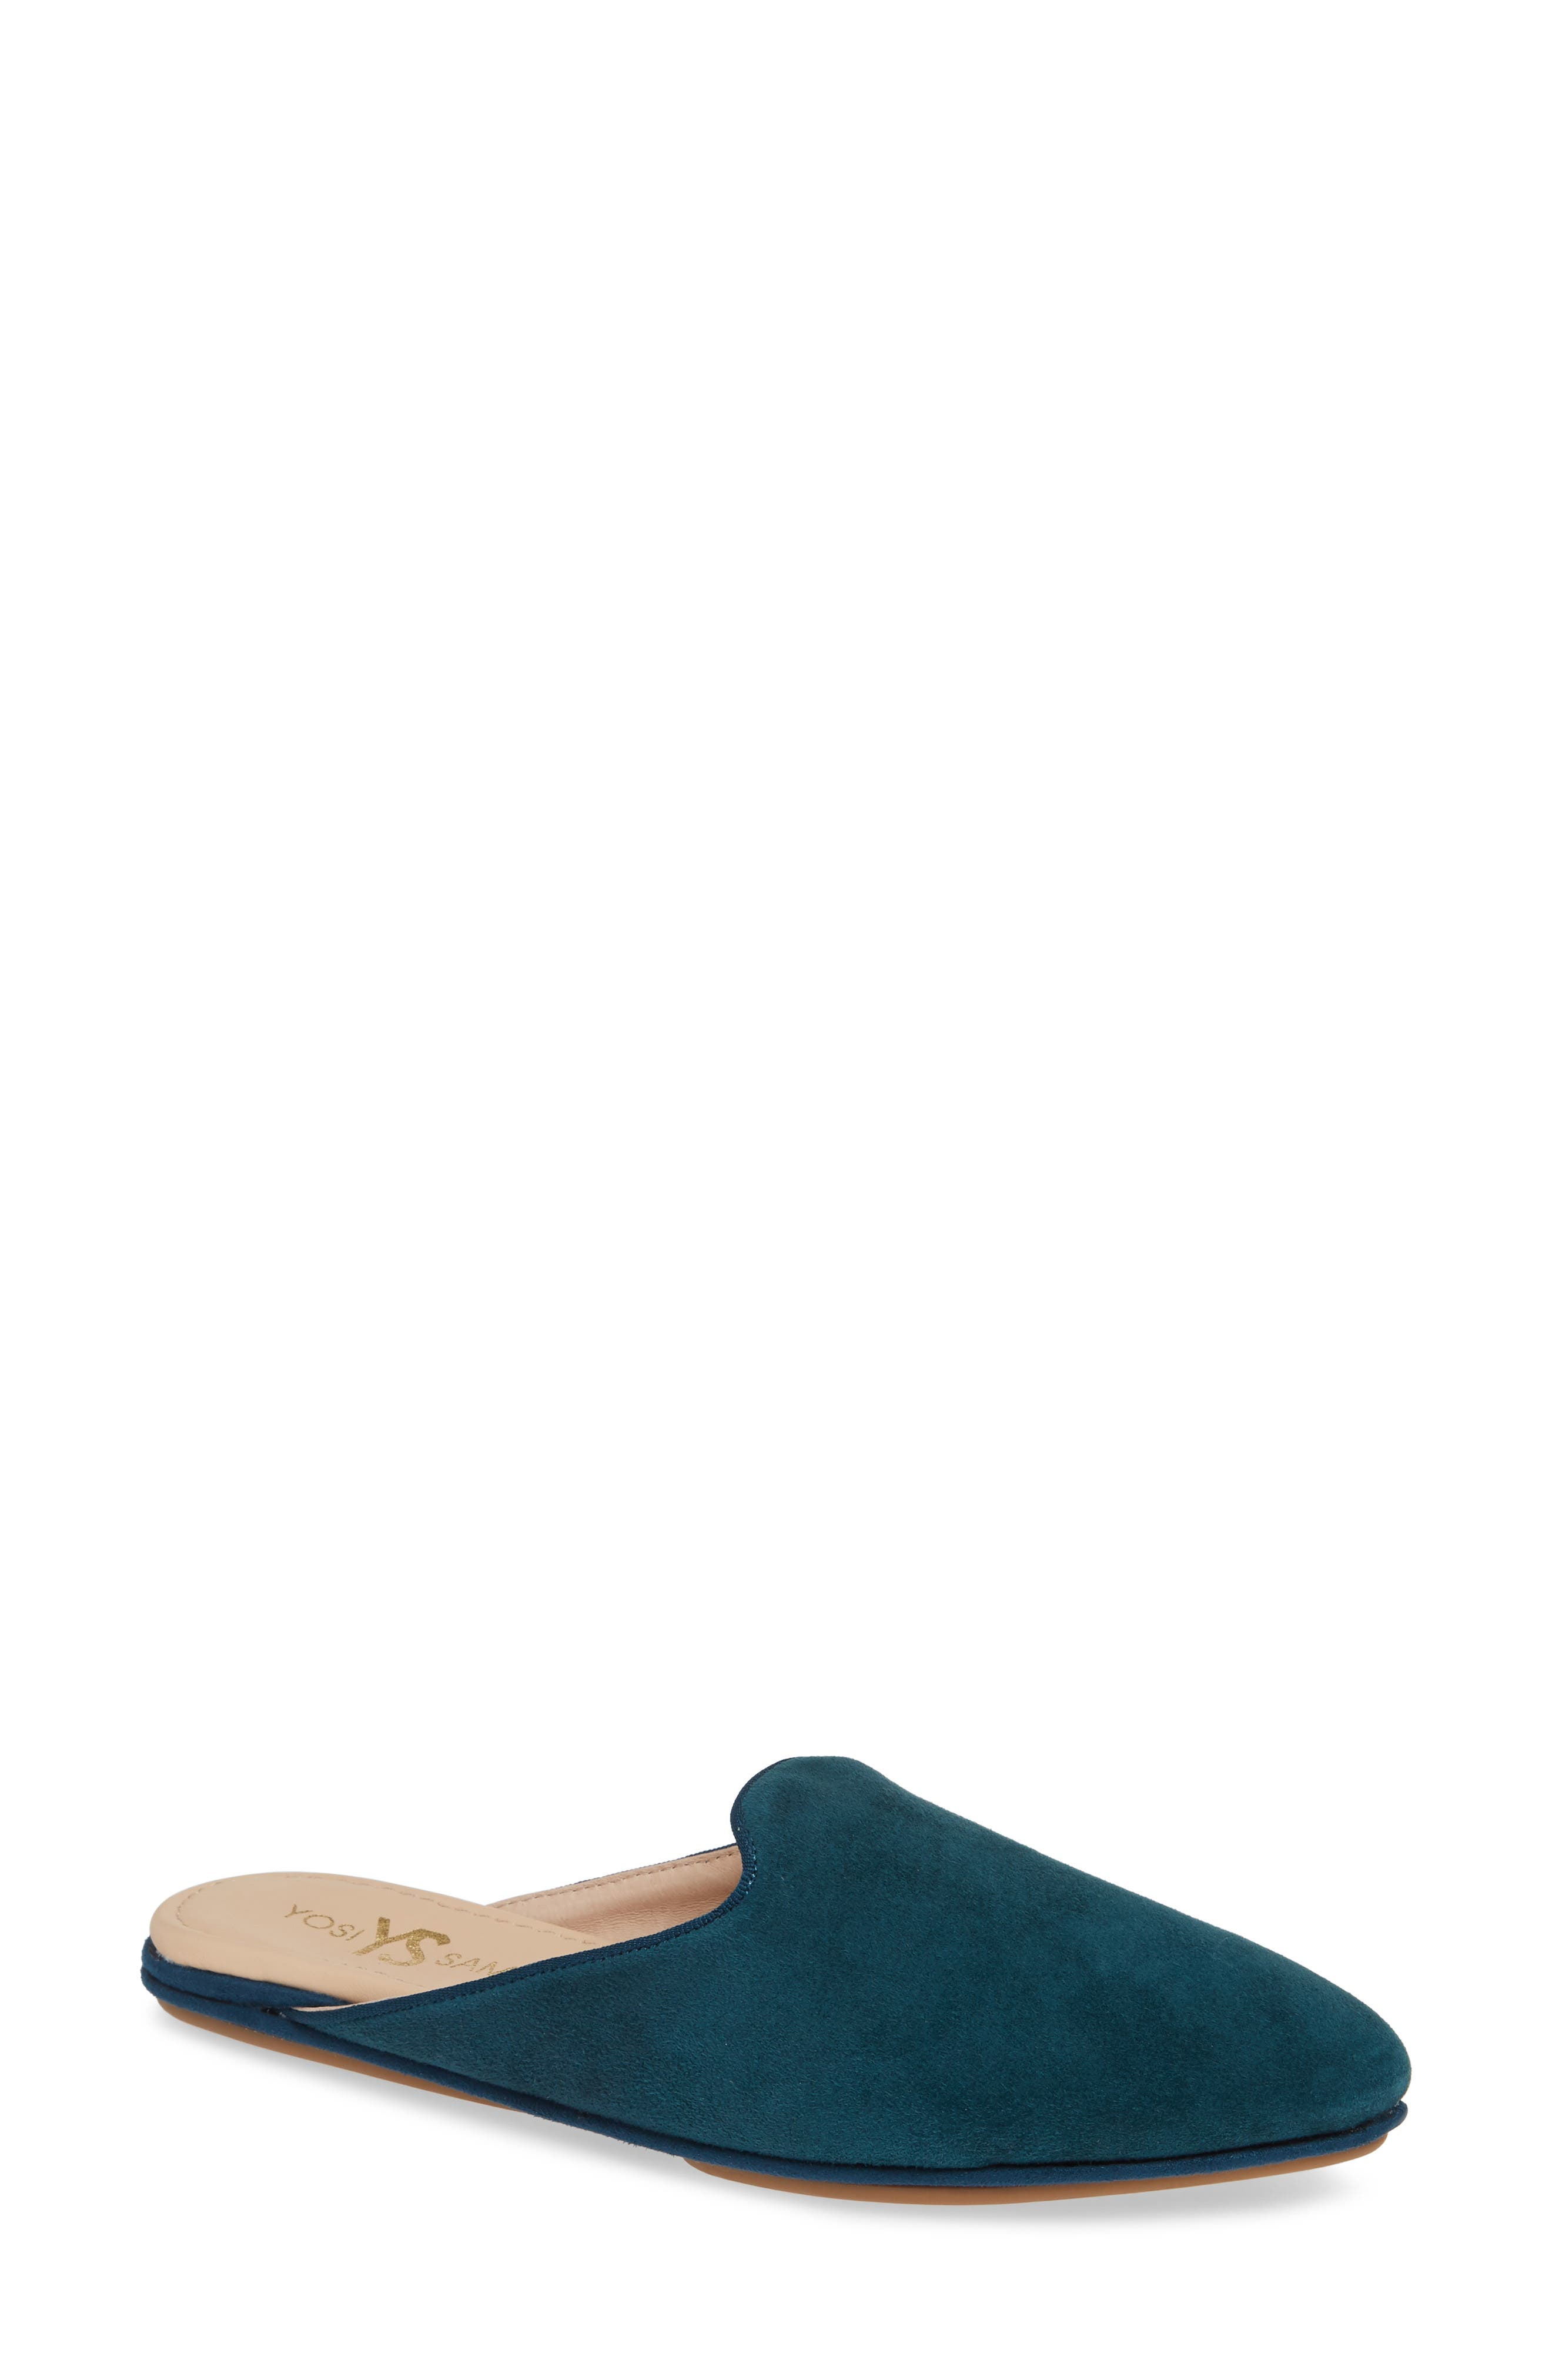 Vidi Mule,                         Main,                         color, Teal Suede